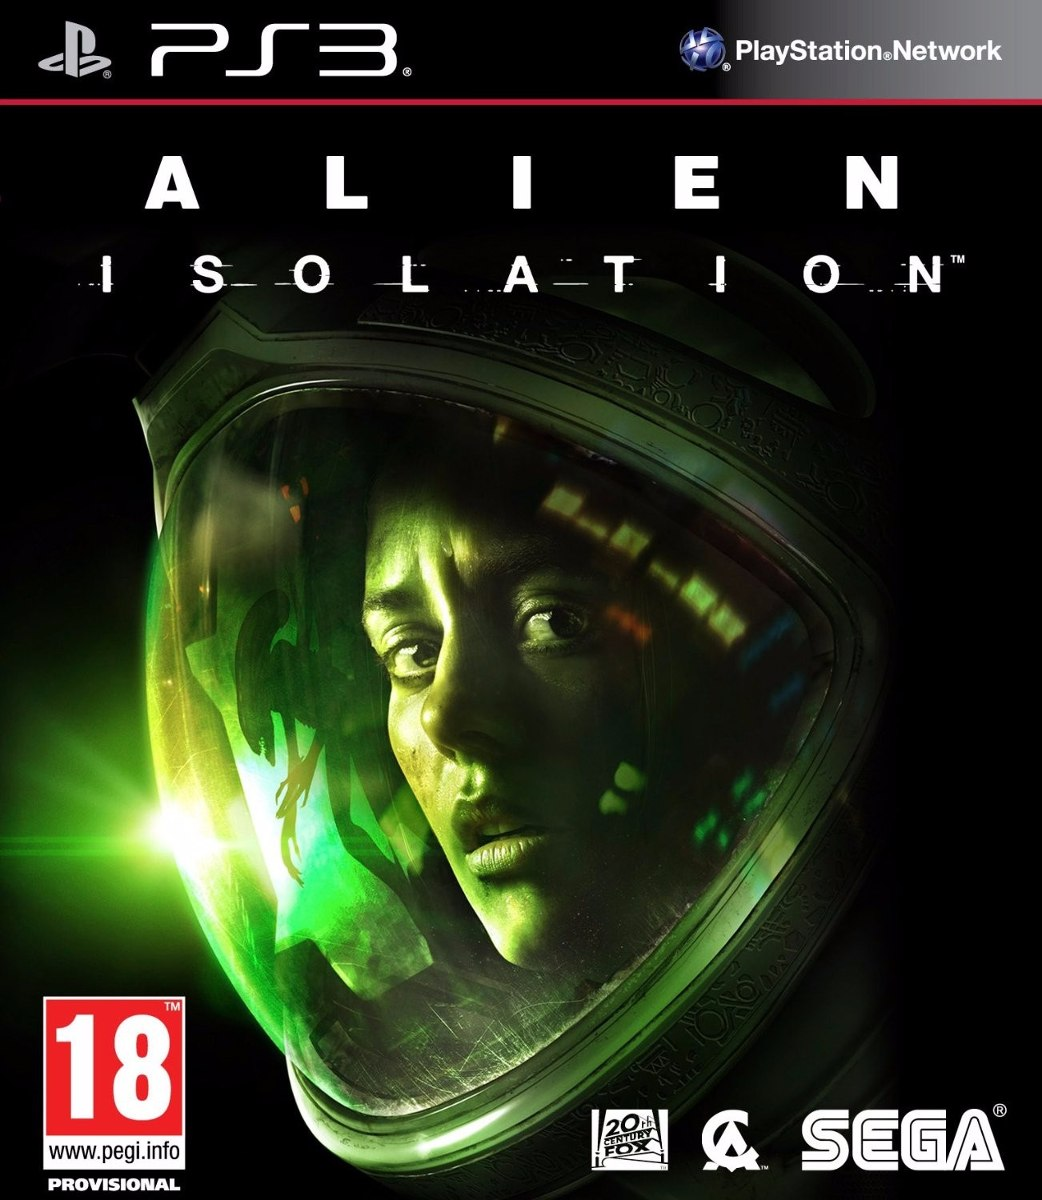 alien isolation ps3 digital.